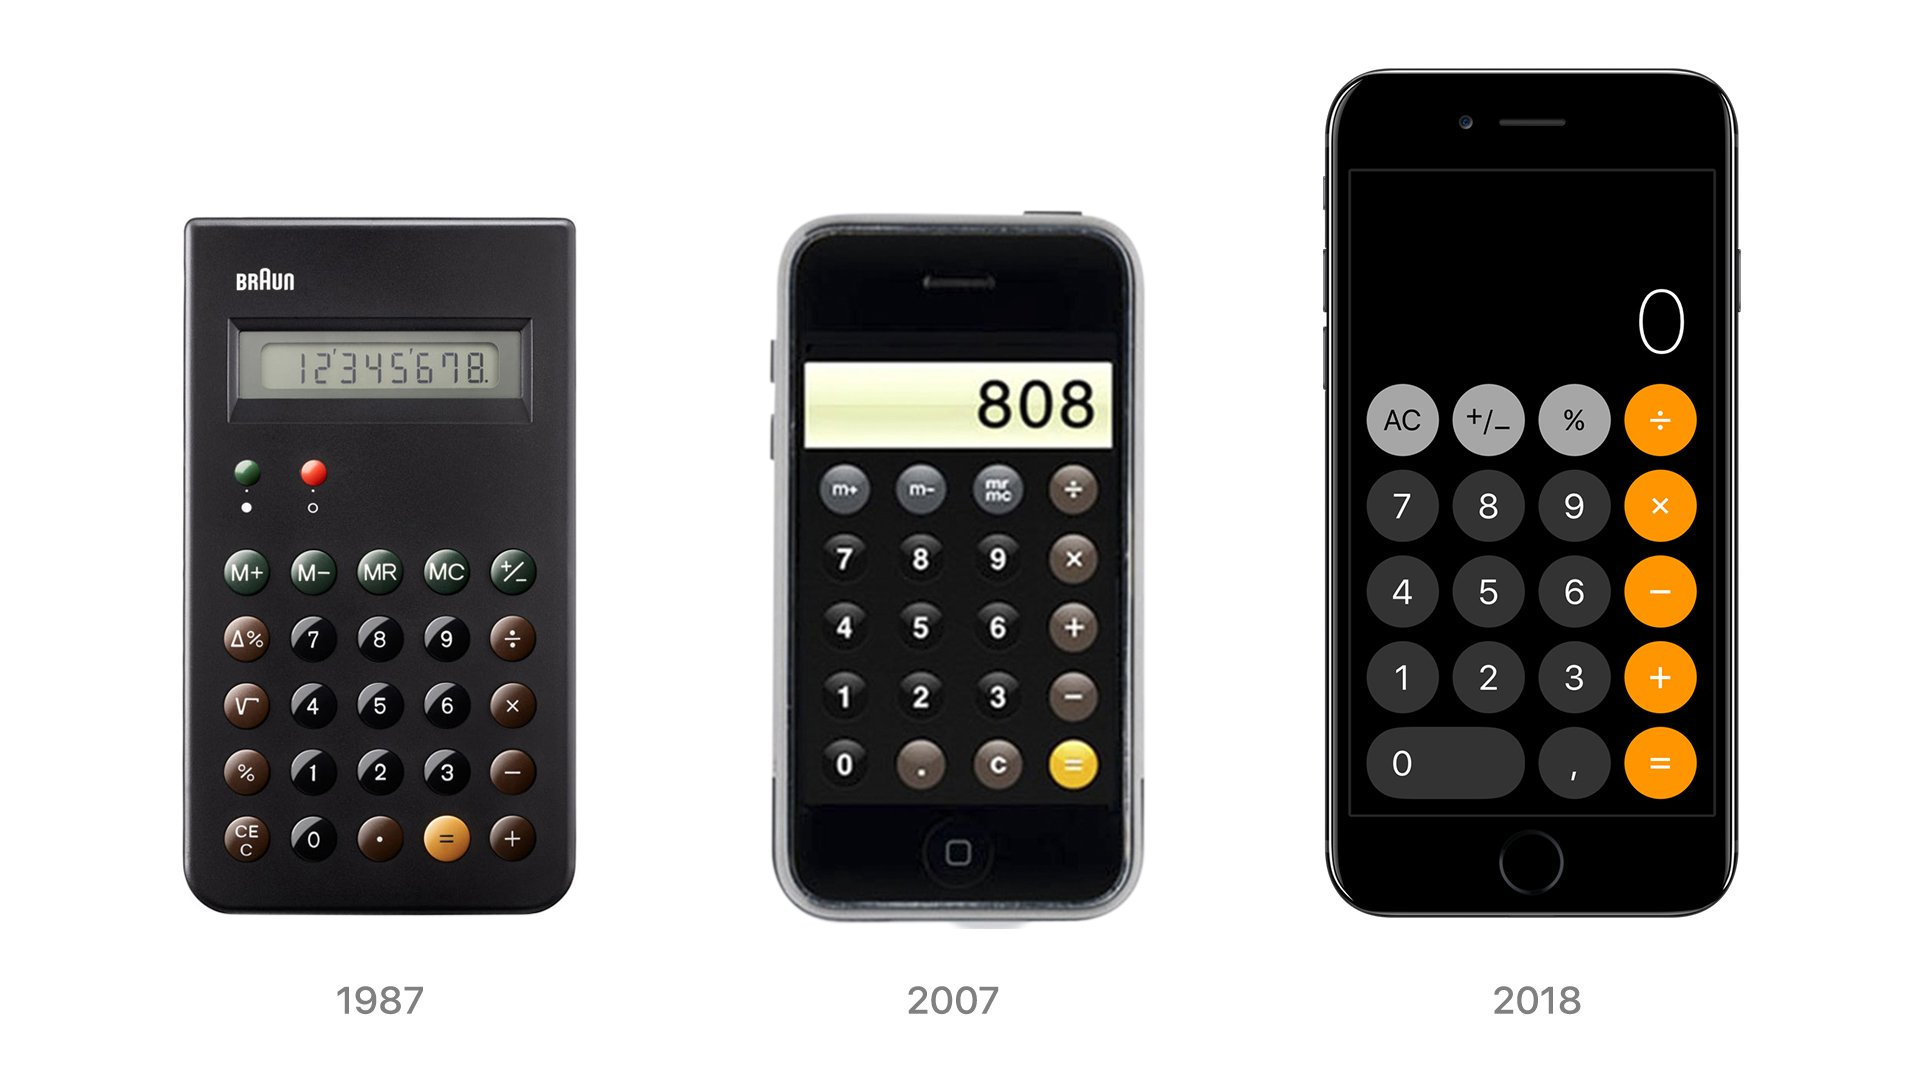 """Alex Khomutov on Twitter: """"Braun's calculator that was created by  @DieterRams in 1987 became an inspiration for the first iPhone, and even  now we can see it in the latest iOS. #braun #"""